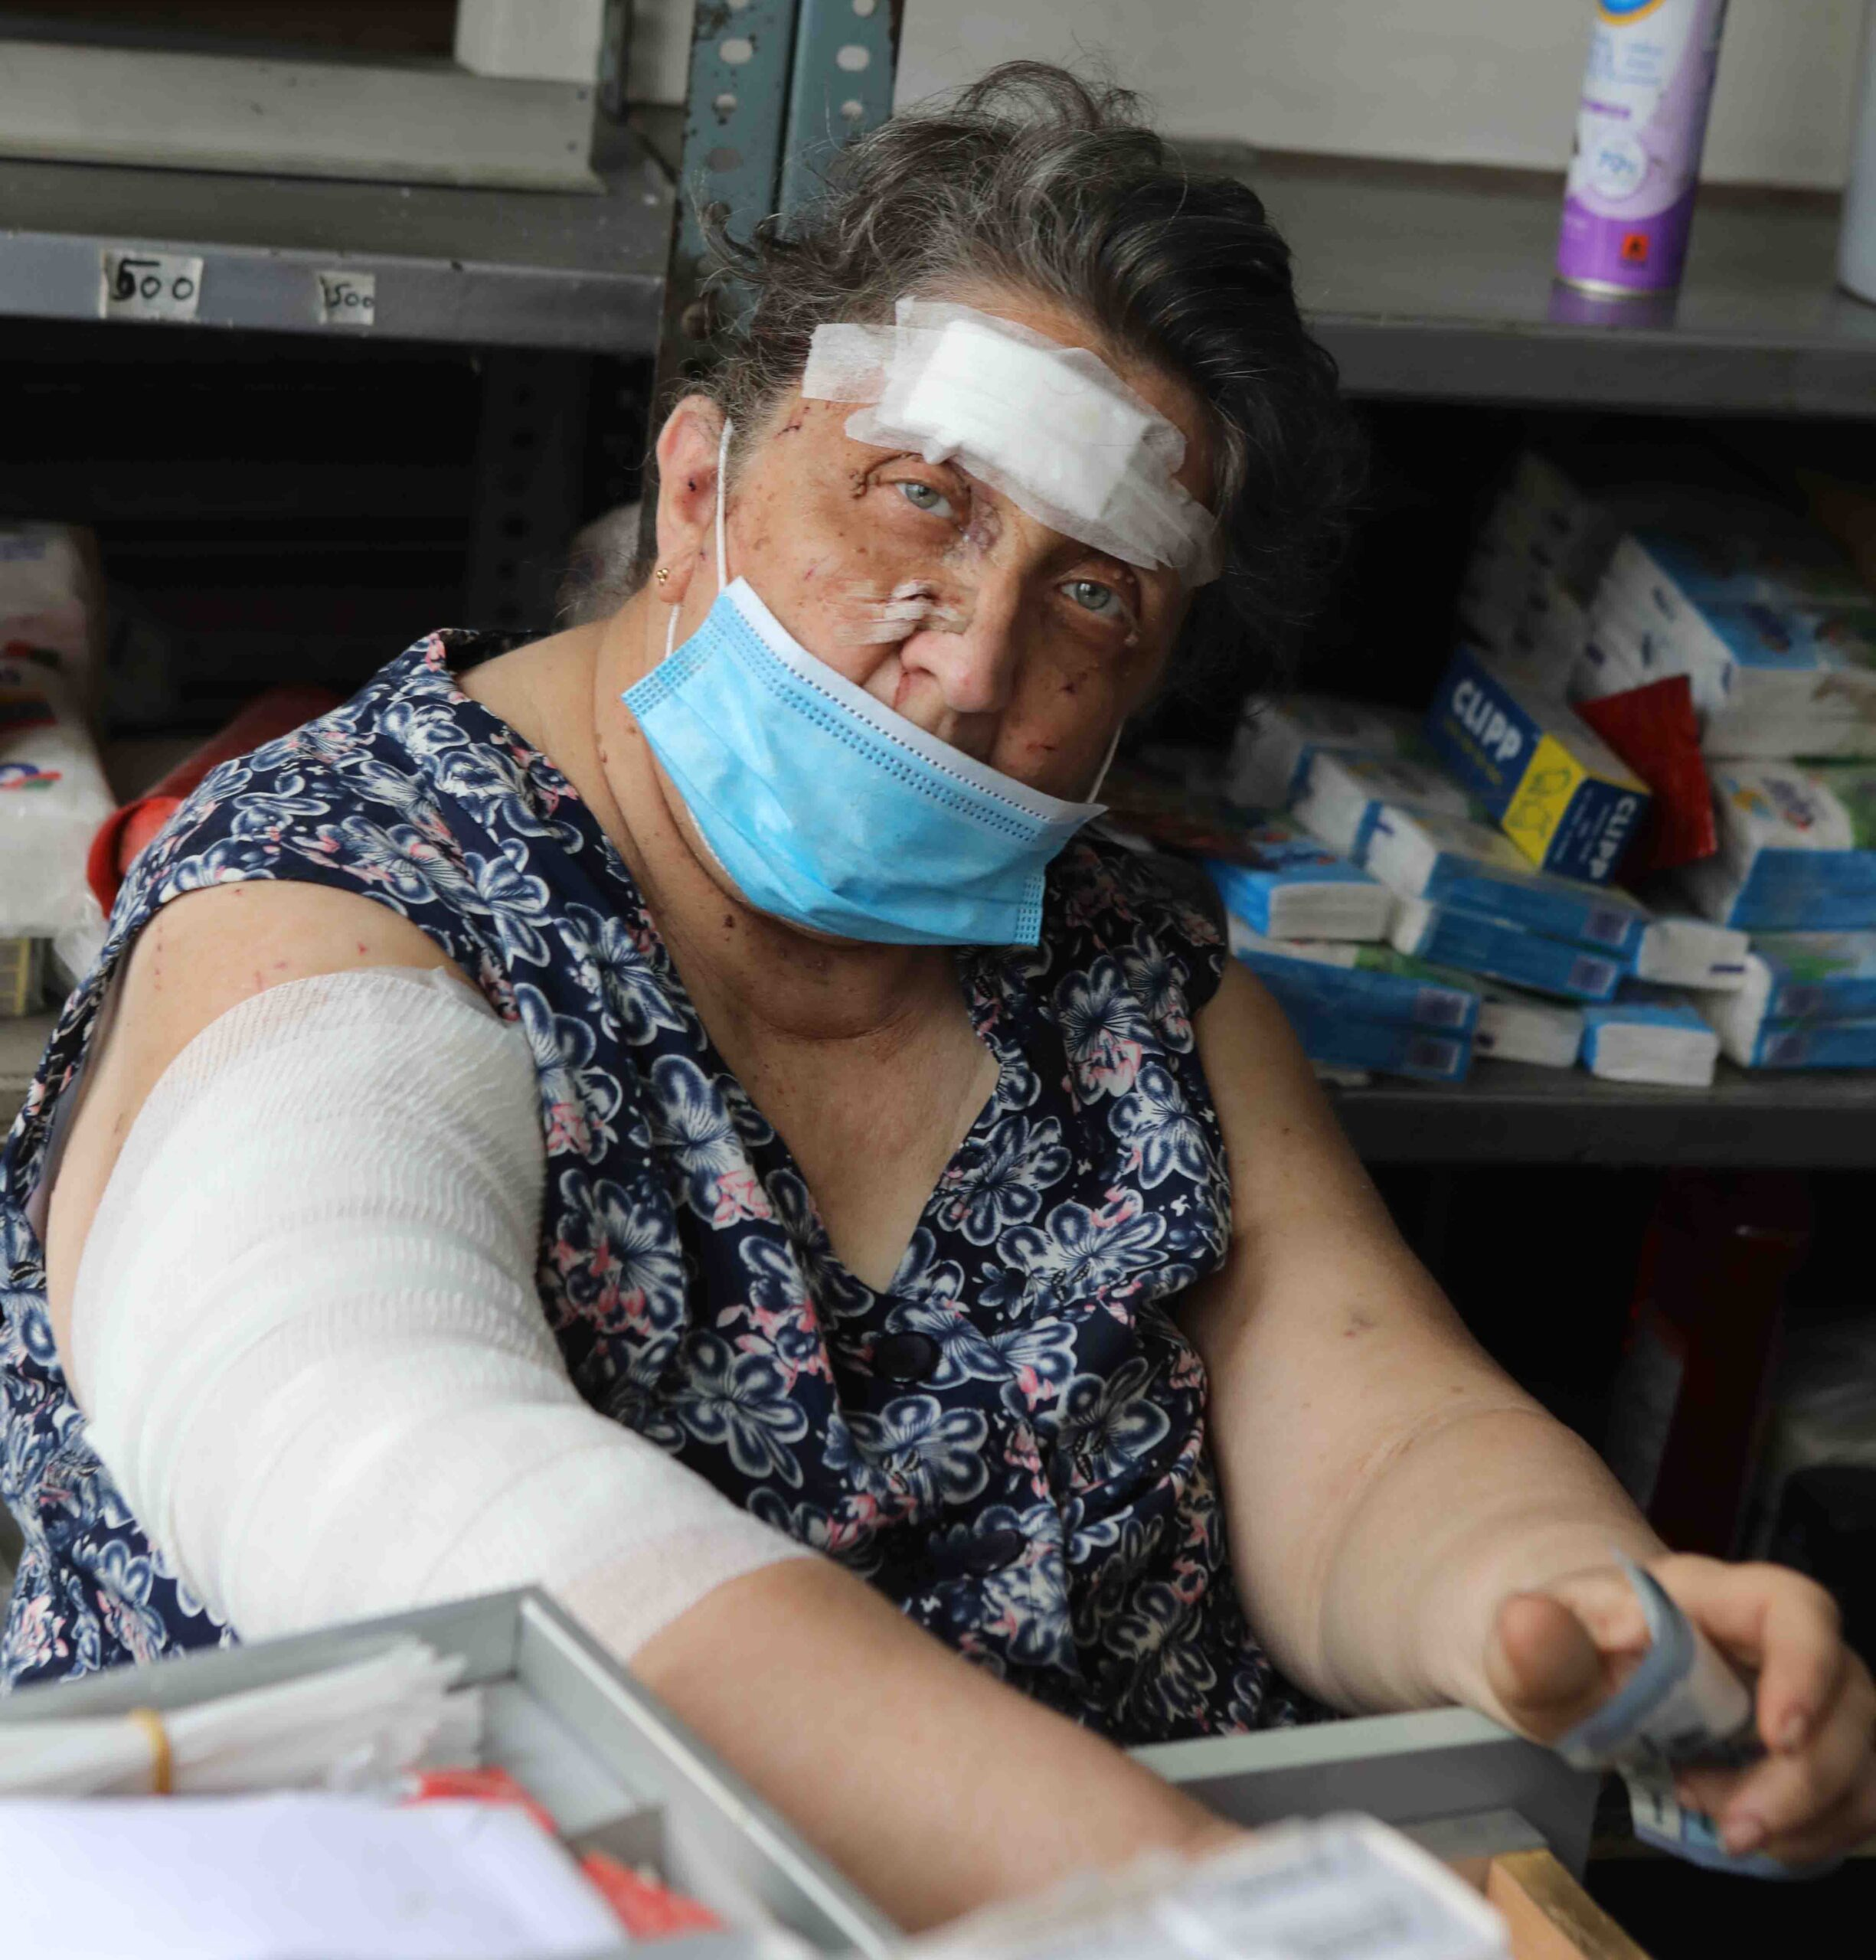 An elderly injured Lebanese woman with bandages on her head and right arm looks directly ahead.